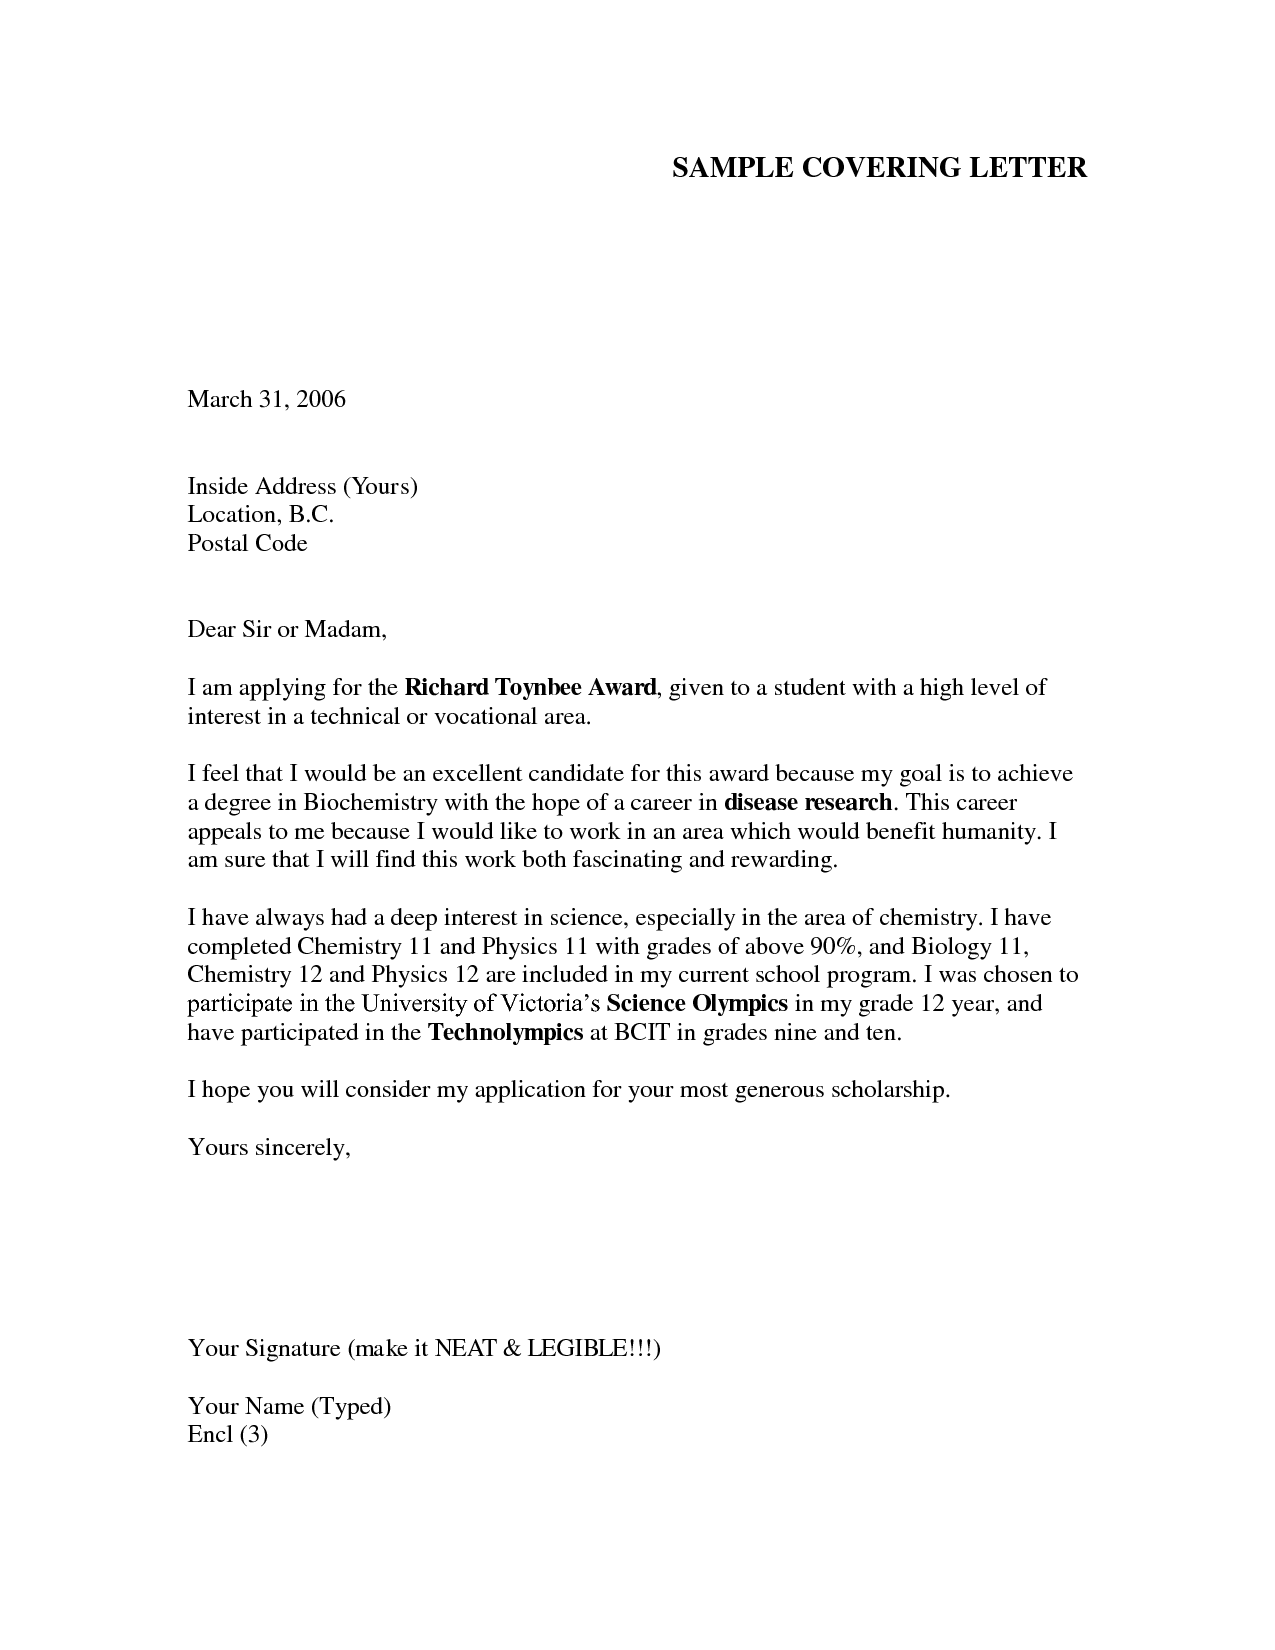 Cover letter example for job application cover letter for Covering letter to apply for a job